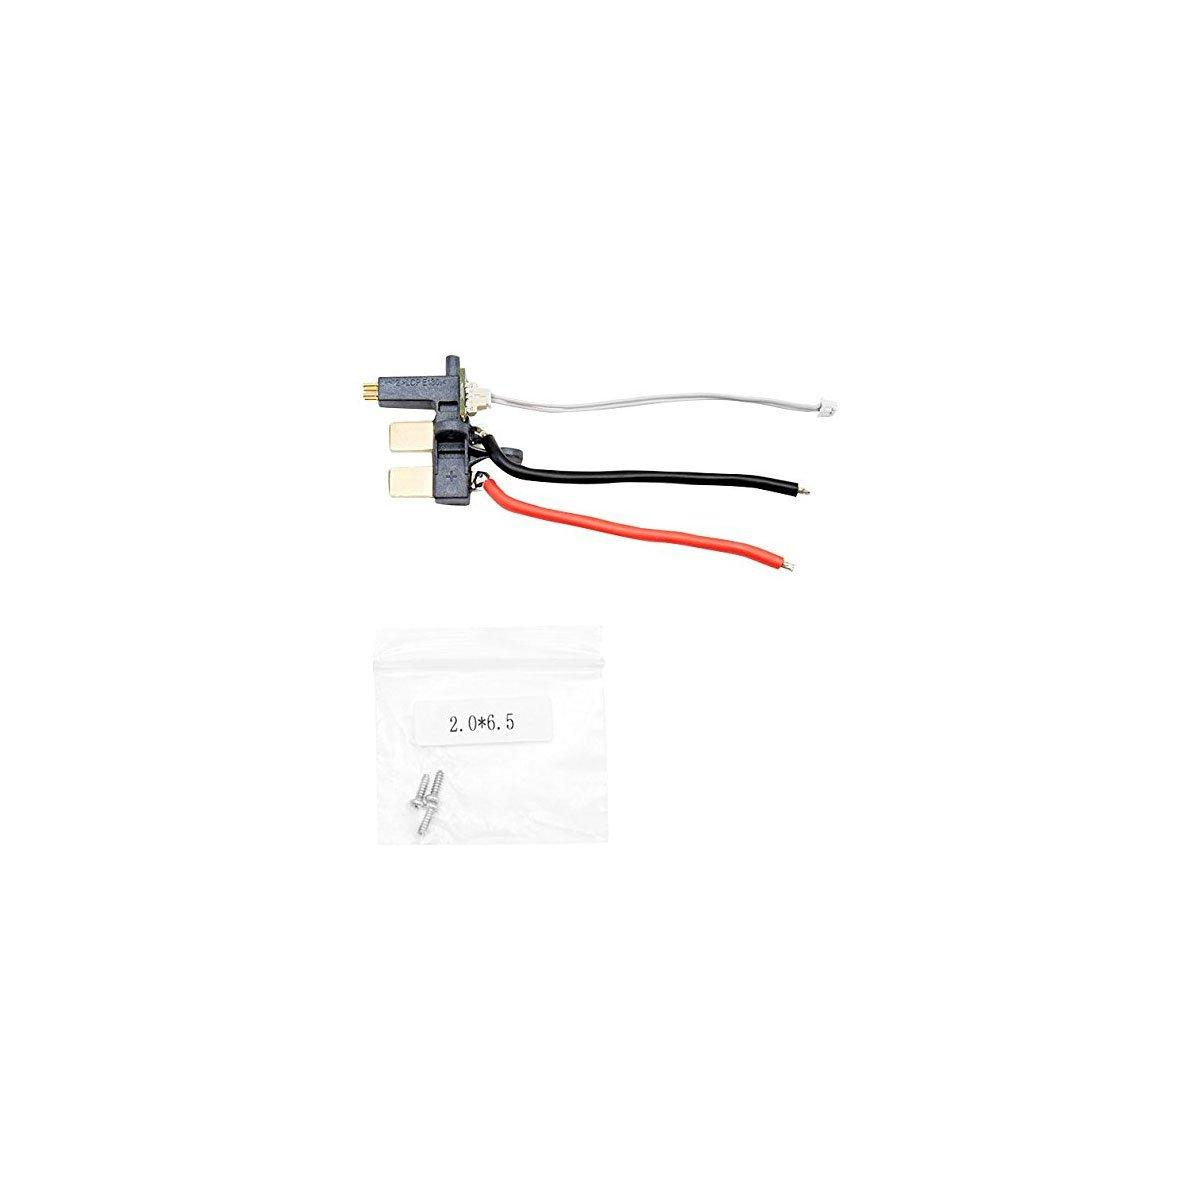 DJI Phantom 4 – Aircraft Power Port Module